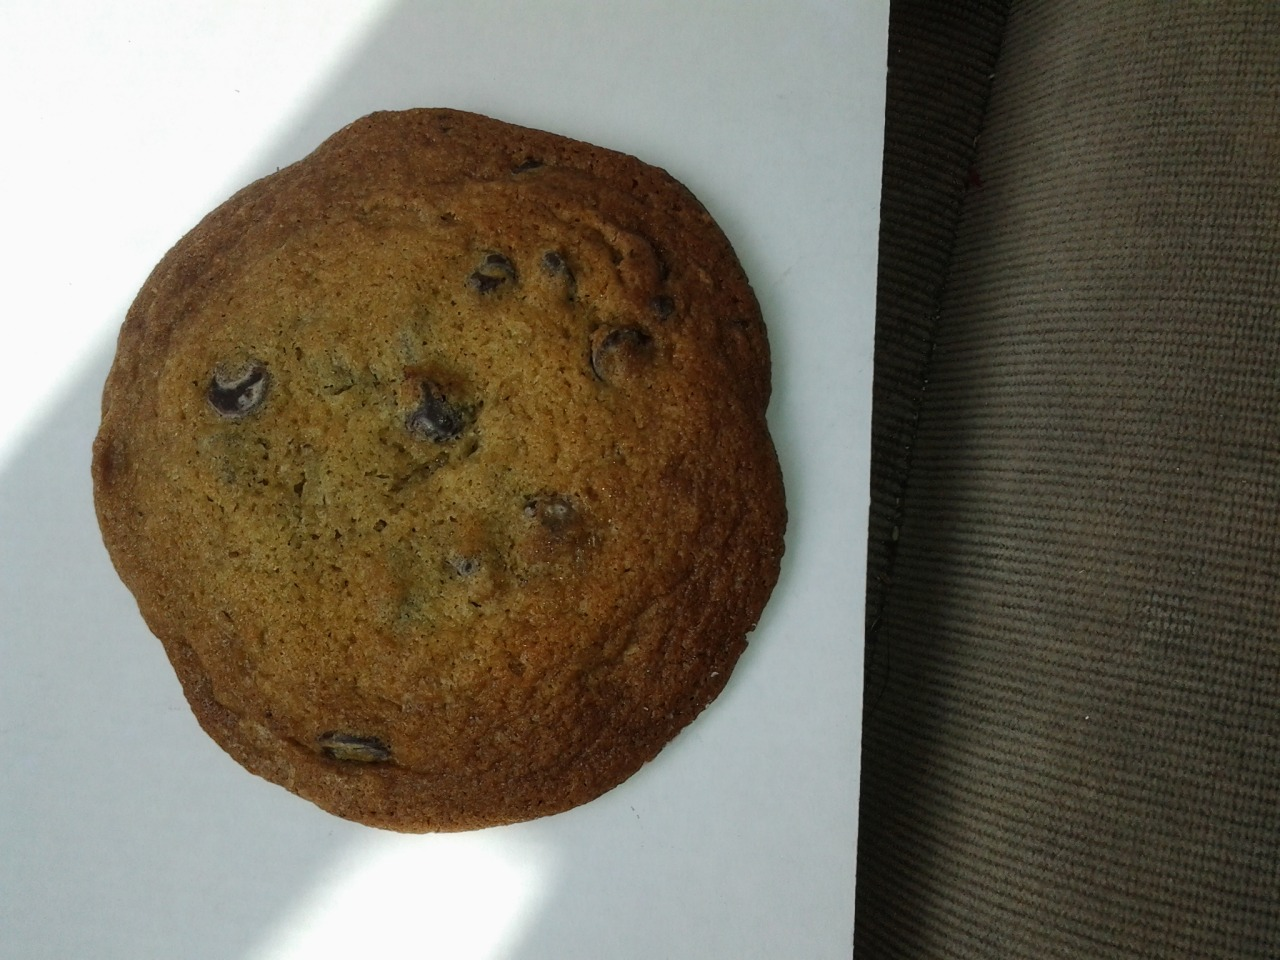 chocolatechipcookiela:  Location: Whole Foods Fairfax and Santa Monica Rating: 5 This cookie is perfectly adequate. Sometimes it taste a little like a fridge but overall it's semi chewy and okay, neither super thin or super thick or super cakey. Occasionally Whole Foods will try to only have vegan cookies which are less than adequate although I guess they're good for vegan chocolate chip cookies so if you're into that they're a win. If you're in the neighborhood and want a cookie this one's okay.  There will be way better cookies in the future and way crappier cookies in the future…this is the average. Red Alert: The Whole Foods on Fairfax and Third often does not have a regular stock of cookies so keep that in mind.  Just started an LA chocolate chip cookie rating tumblr